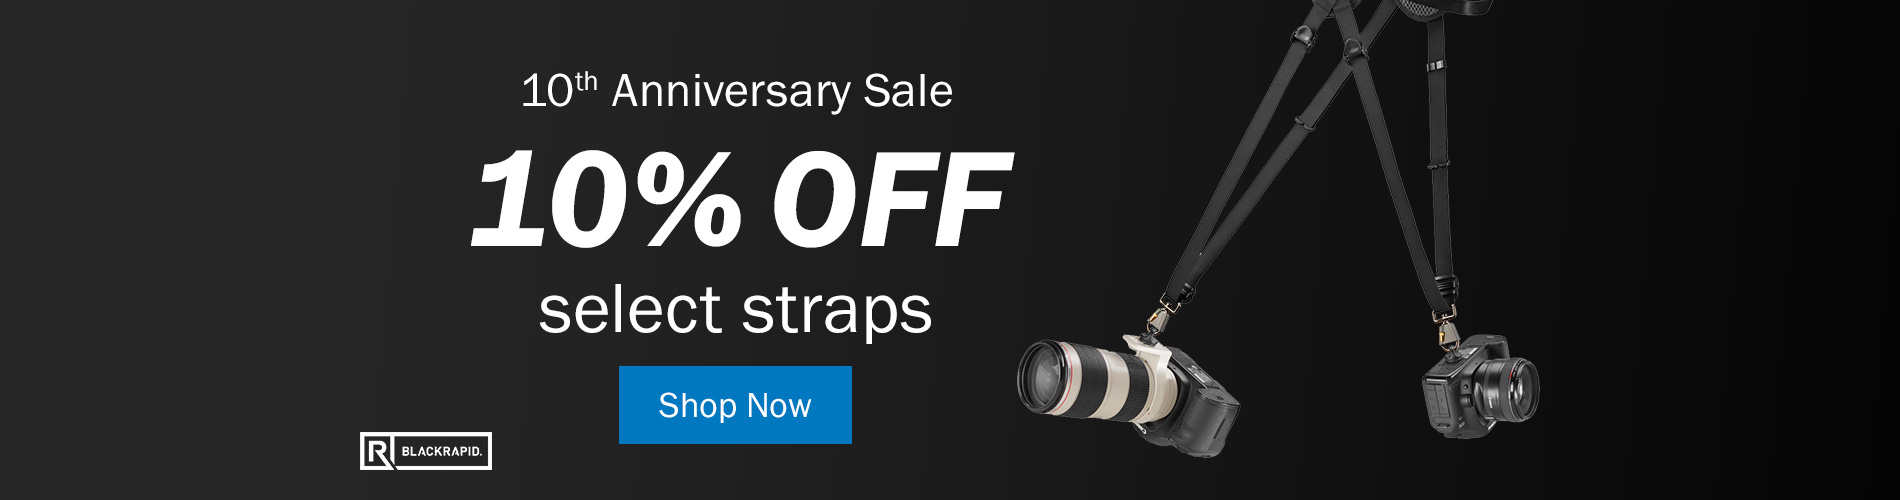 10% off select camera straps during BlackRapid's 10th Anniversary Sale! Shop Now >